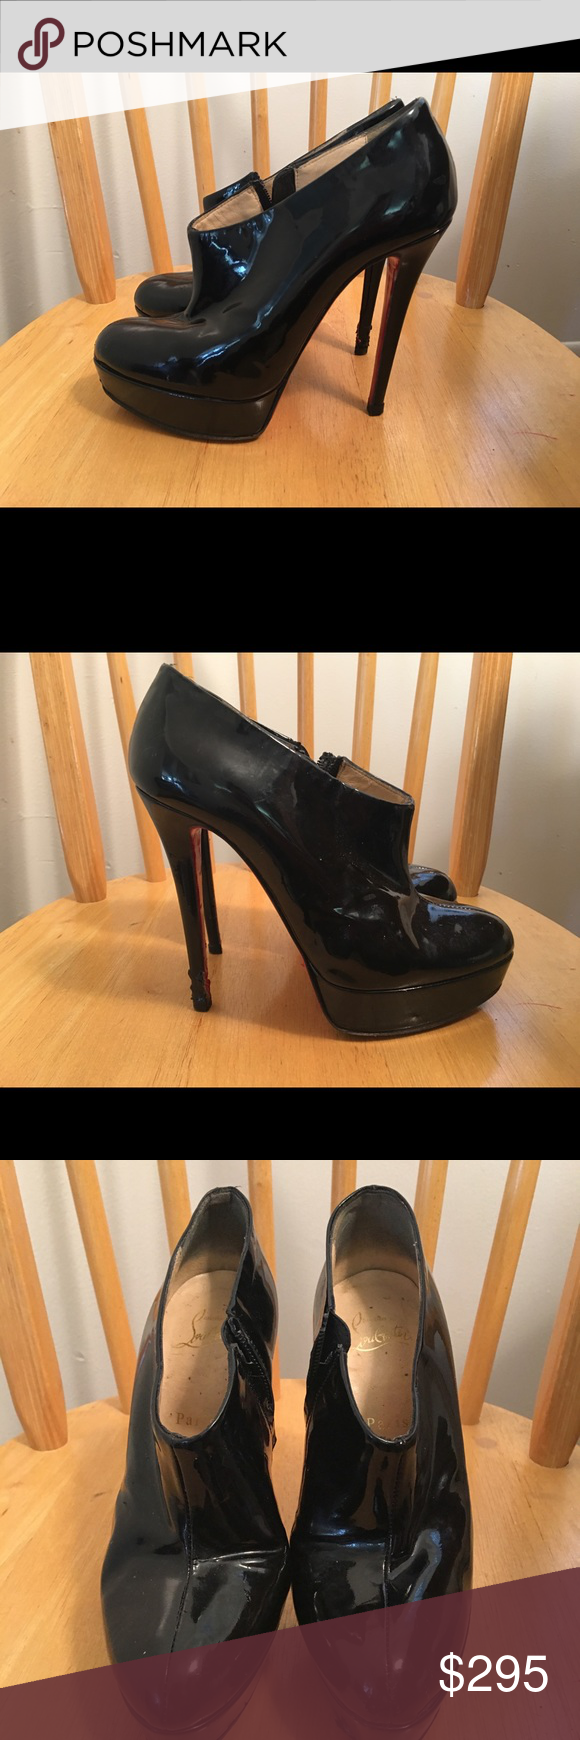 6d447f5d53c Christian Louboutin Moulage Platform Booties Authentic Christian Louboutin  Size 37.5 Black Patent Leather With Zip Closure Damage To Heel